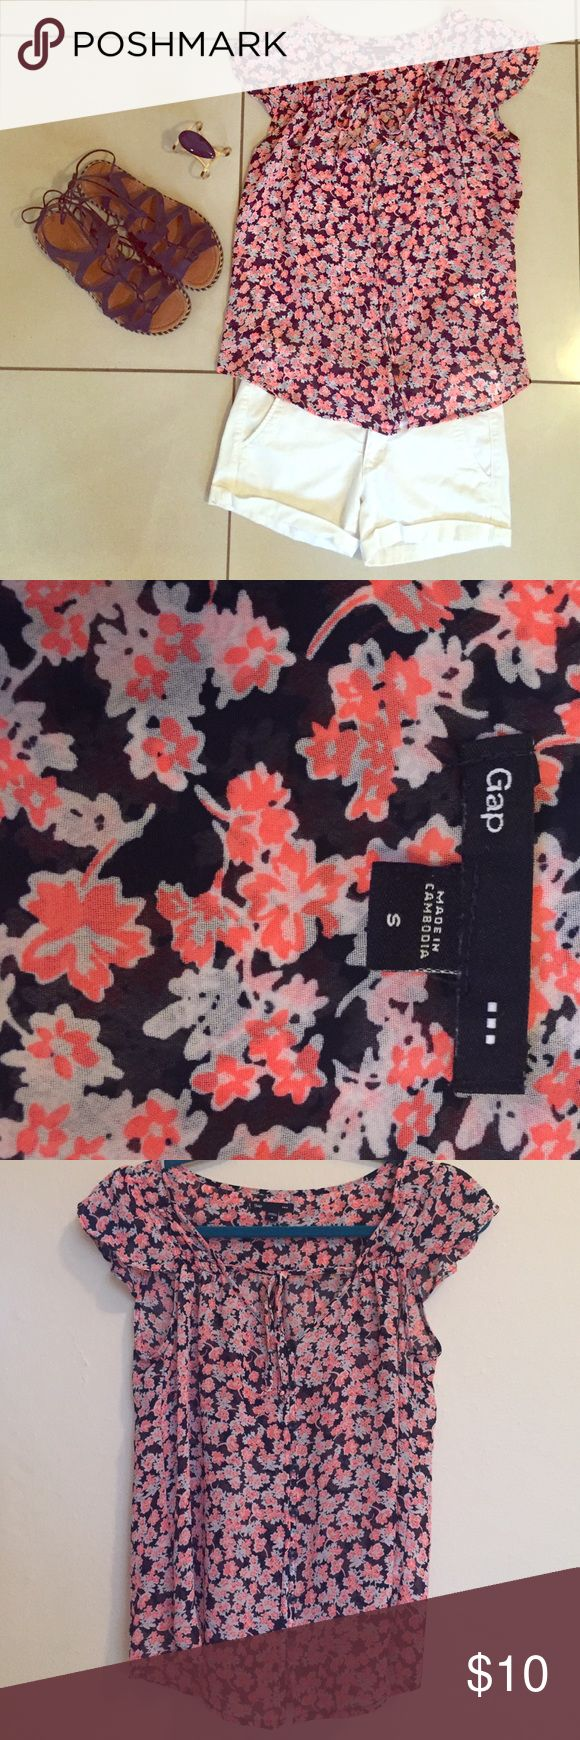 ‼️CLOSET CLOSING 7/9‼️Gap Floral Blouse Size S. Excellent condition. Perfect to wear with white shorts. Please feel free to make an offer or ask any question you may have. GAP Tops Blouses